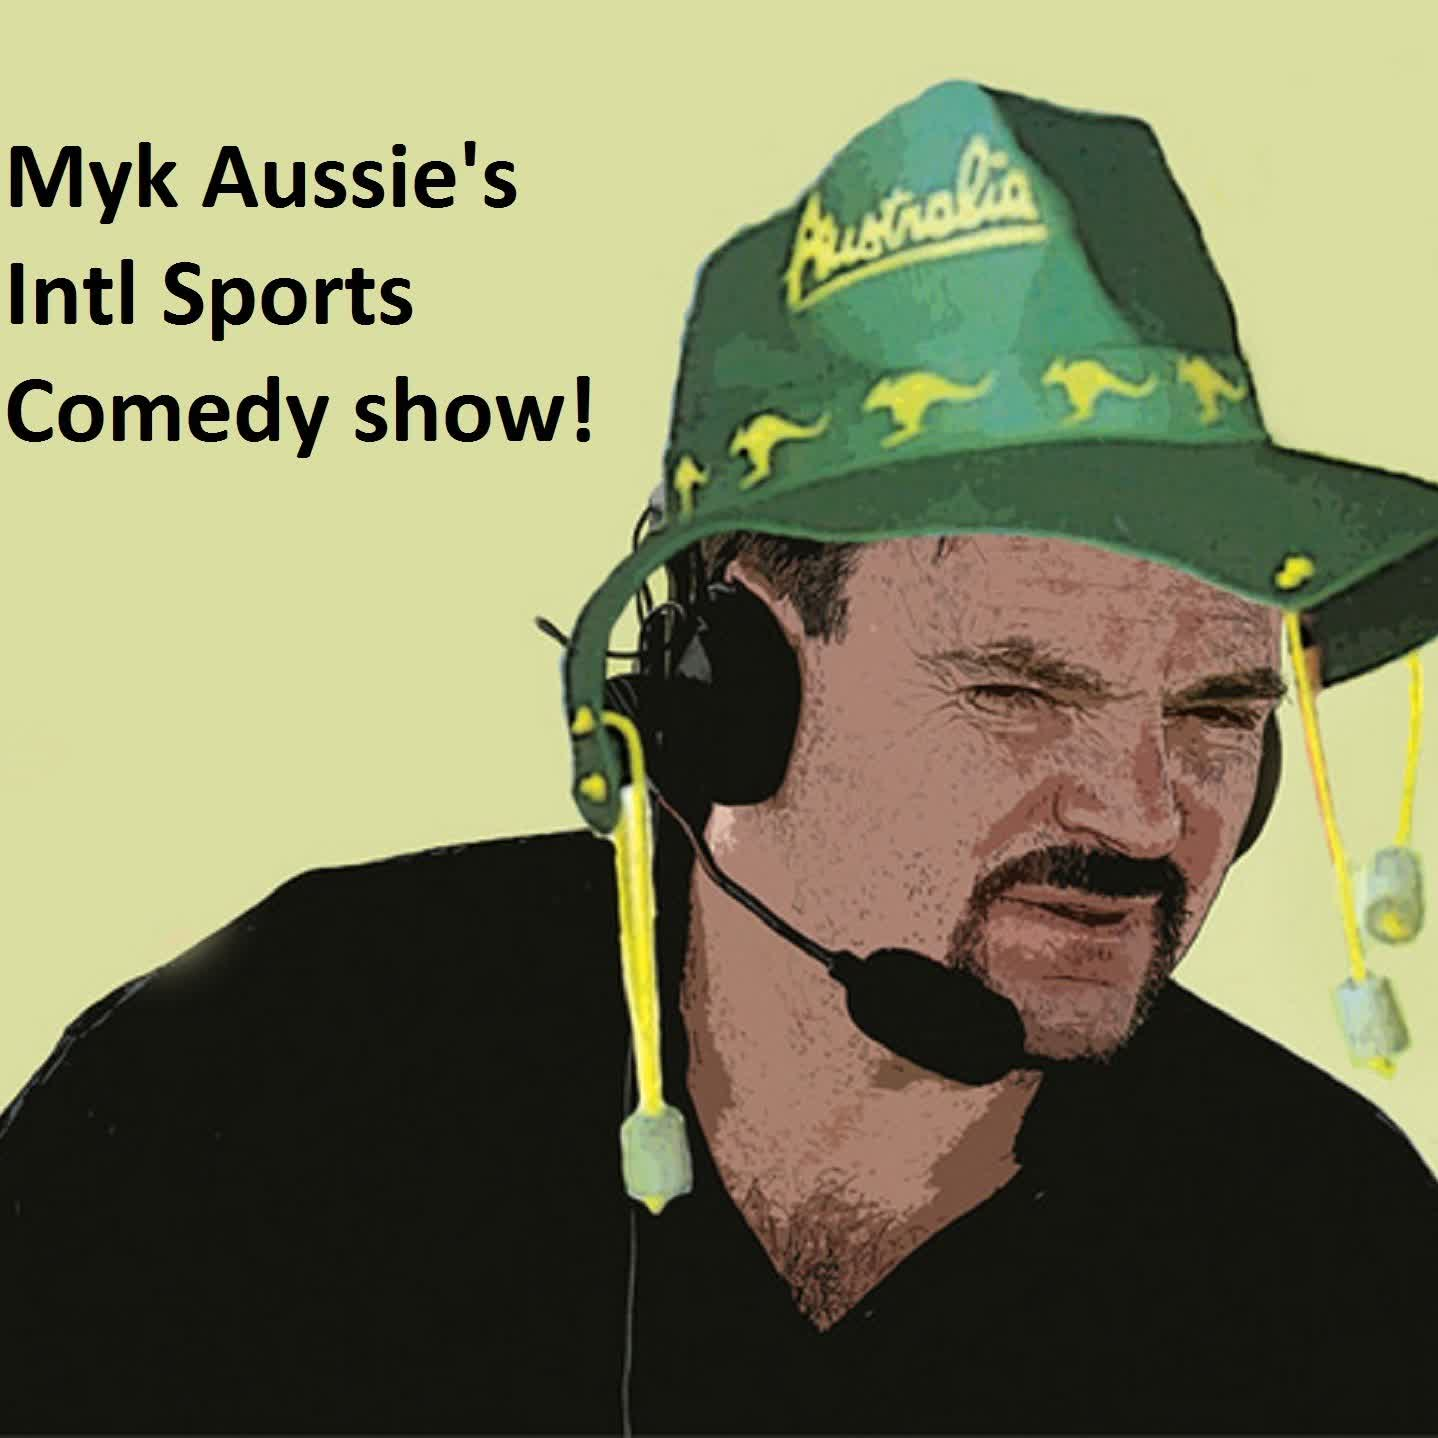 Myk Aussie Intl Sports, Sports Comedy show - Episode 6